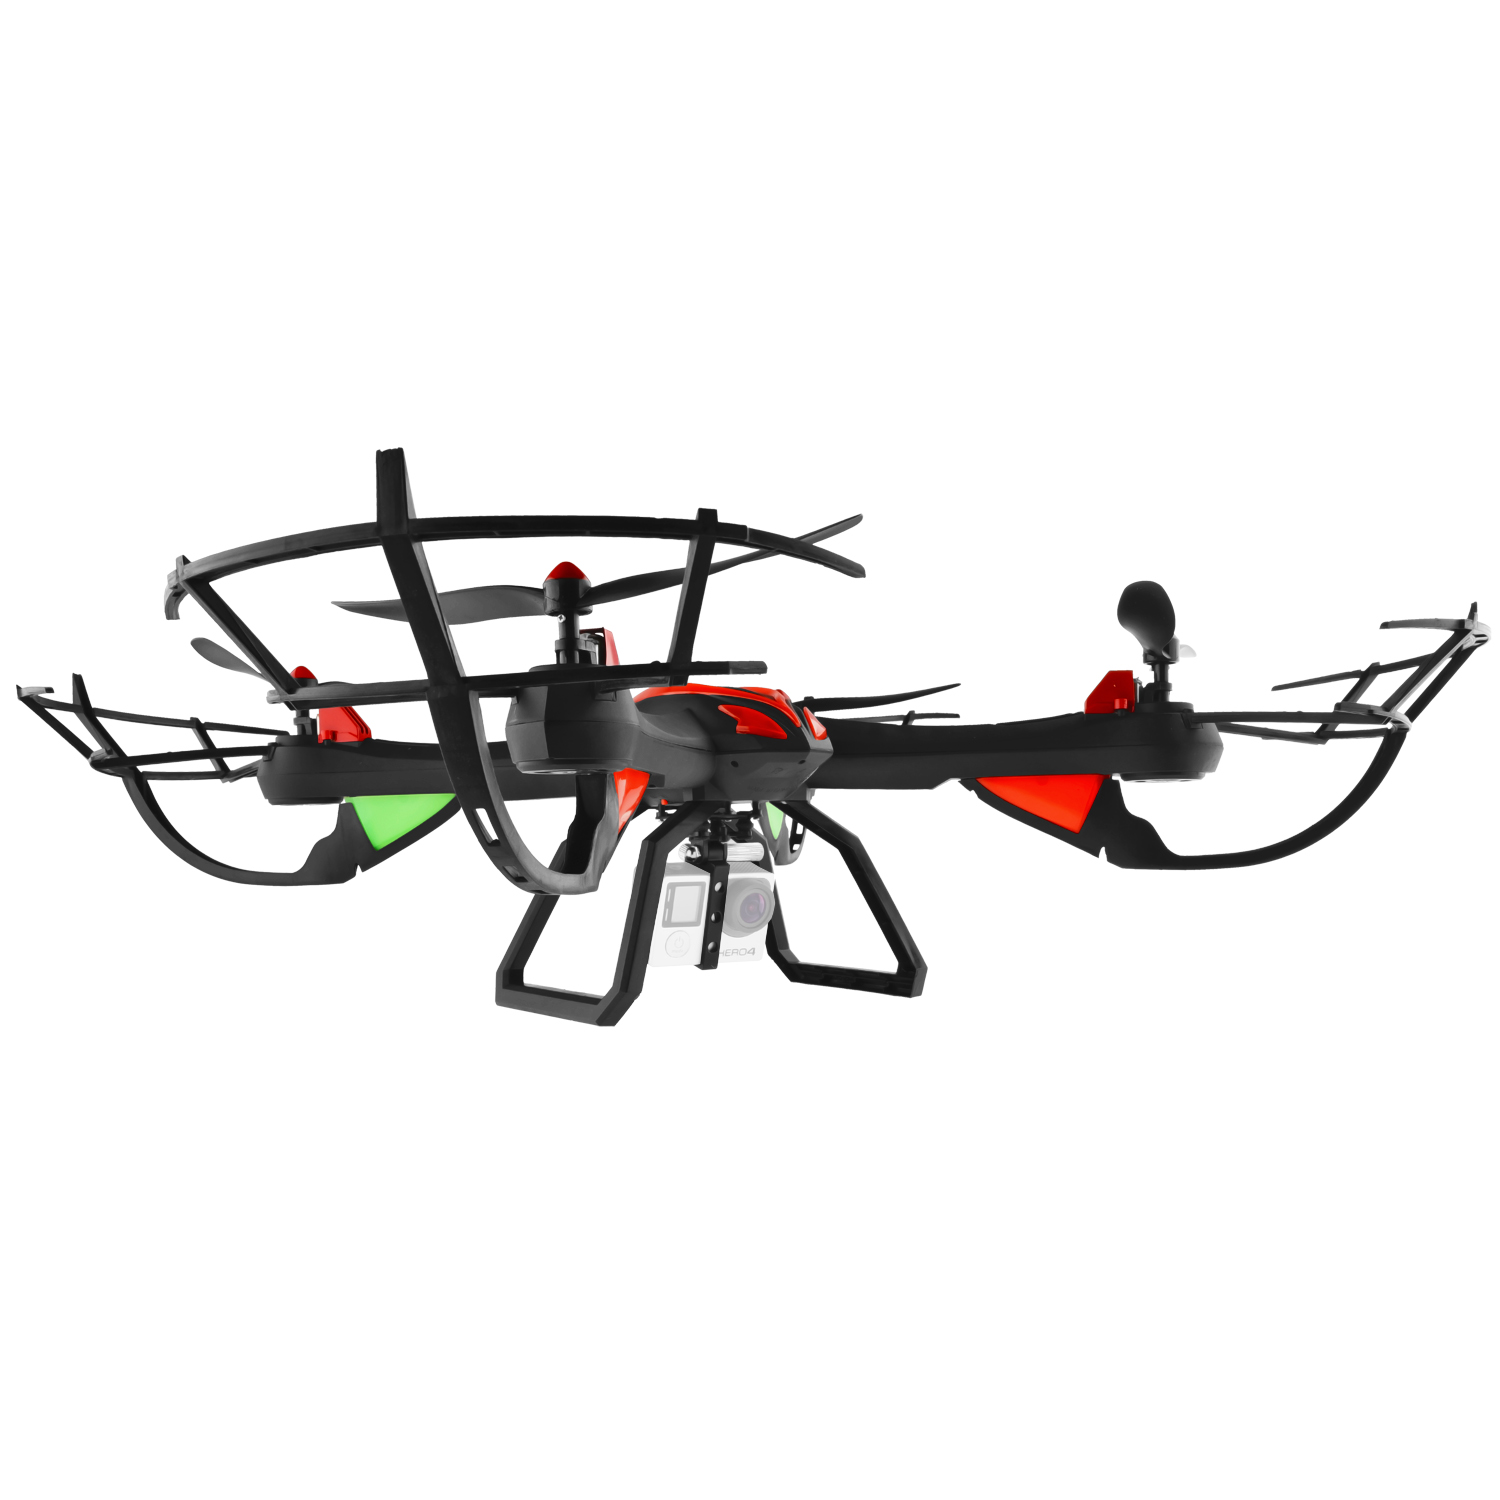 Image for Dynamic Aerial Systems X4 Venom 6 Channel 2.4Ghz Remote Control Quadcopter Drone from Circuit City